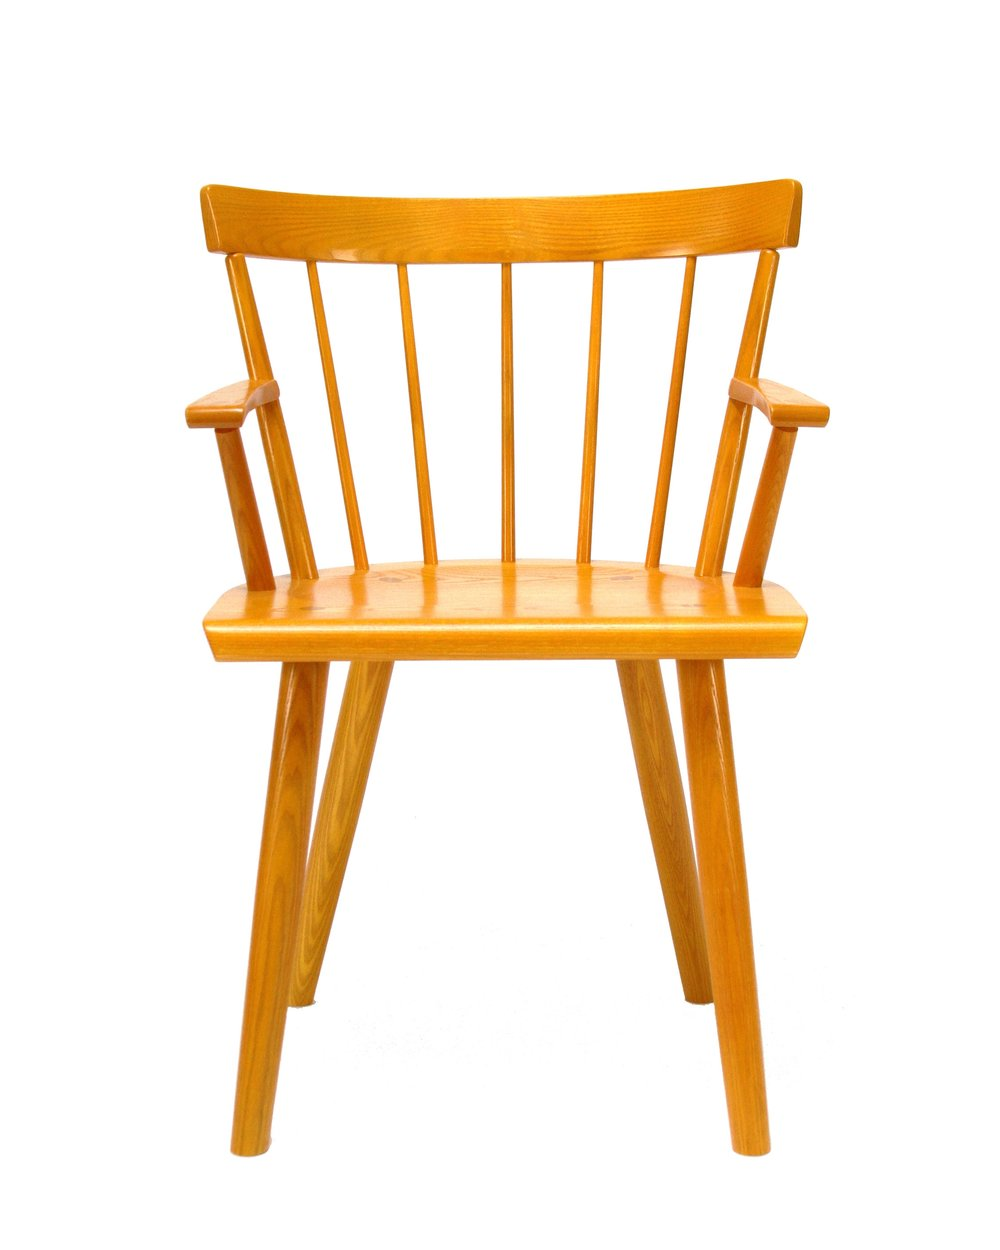 O&G Studio Colt Low Back Lowback Windsor Contemporary Dining Chair Armchair Large Turmeric Stain Tumeric Stain on Ash